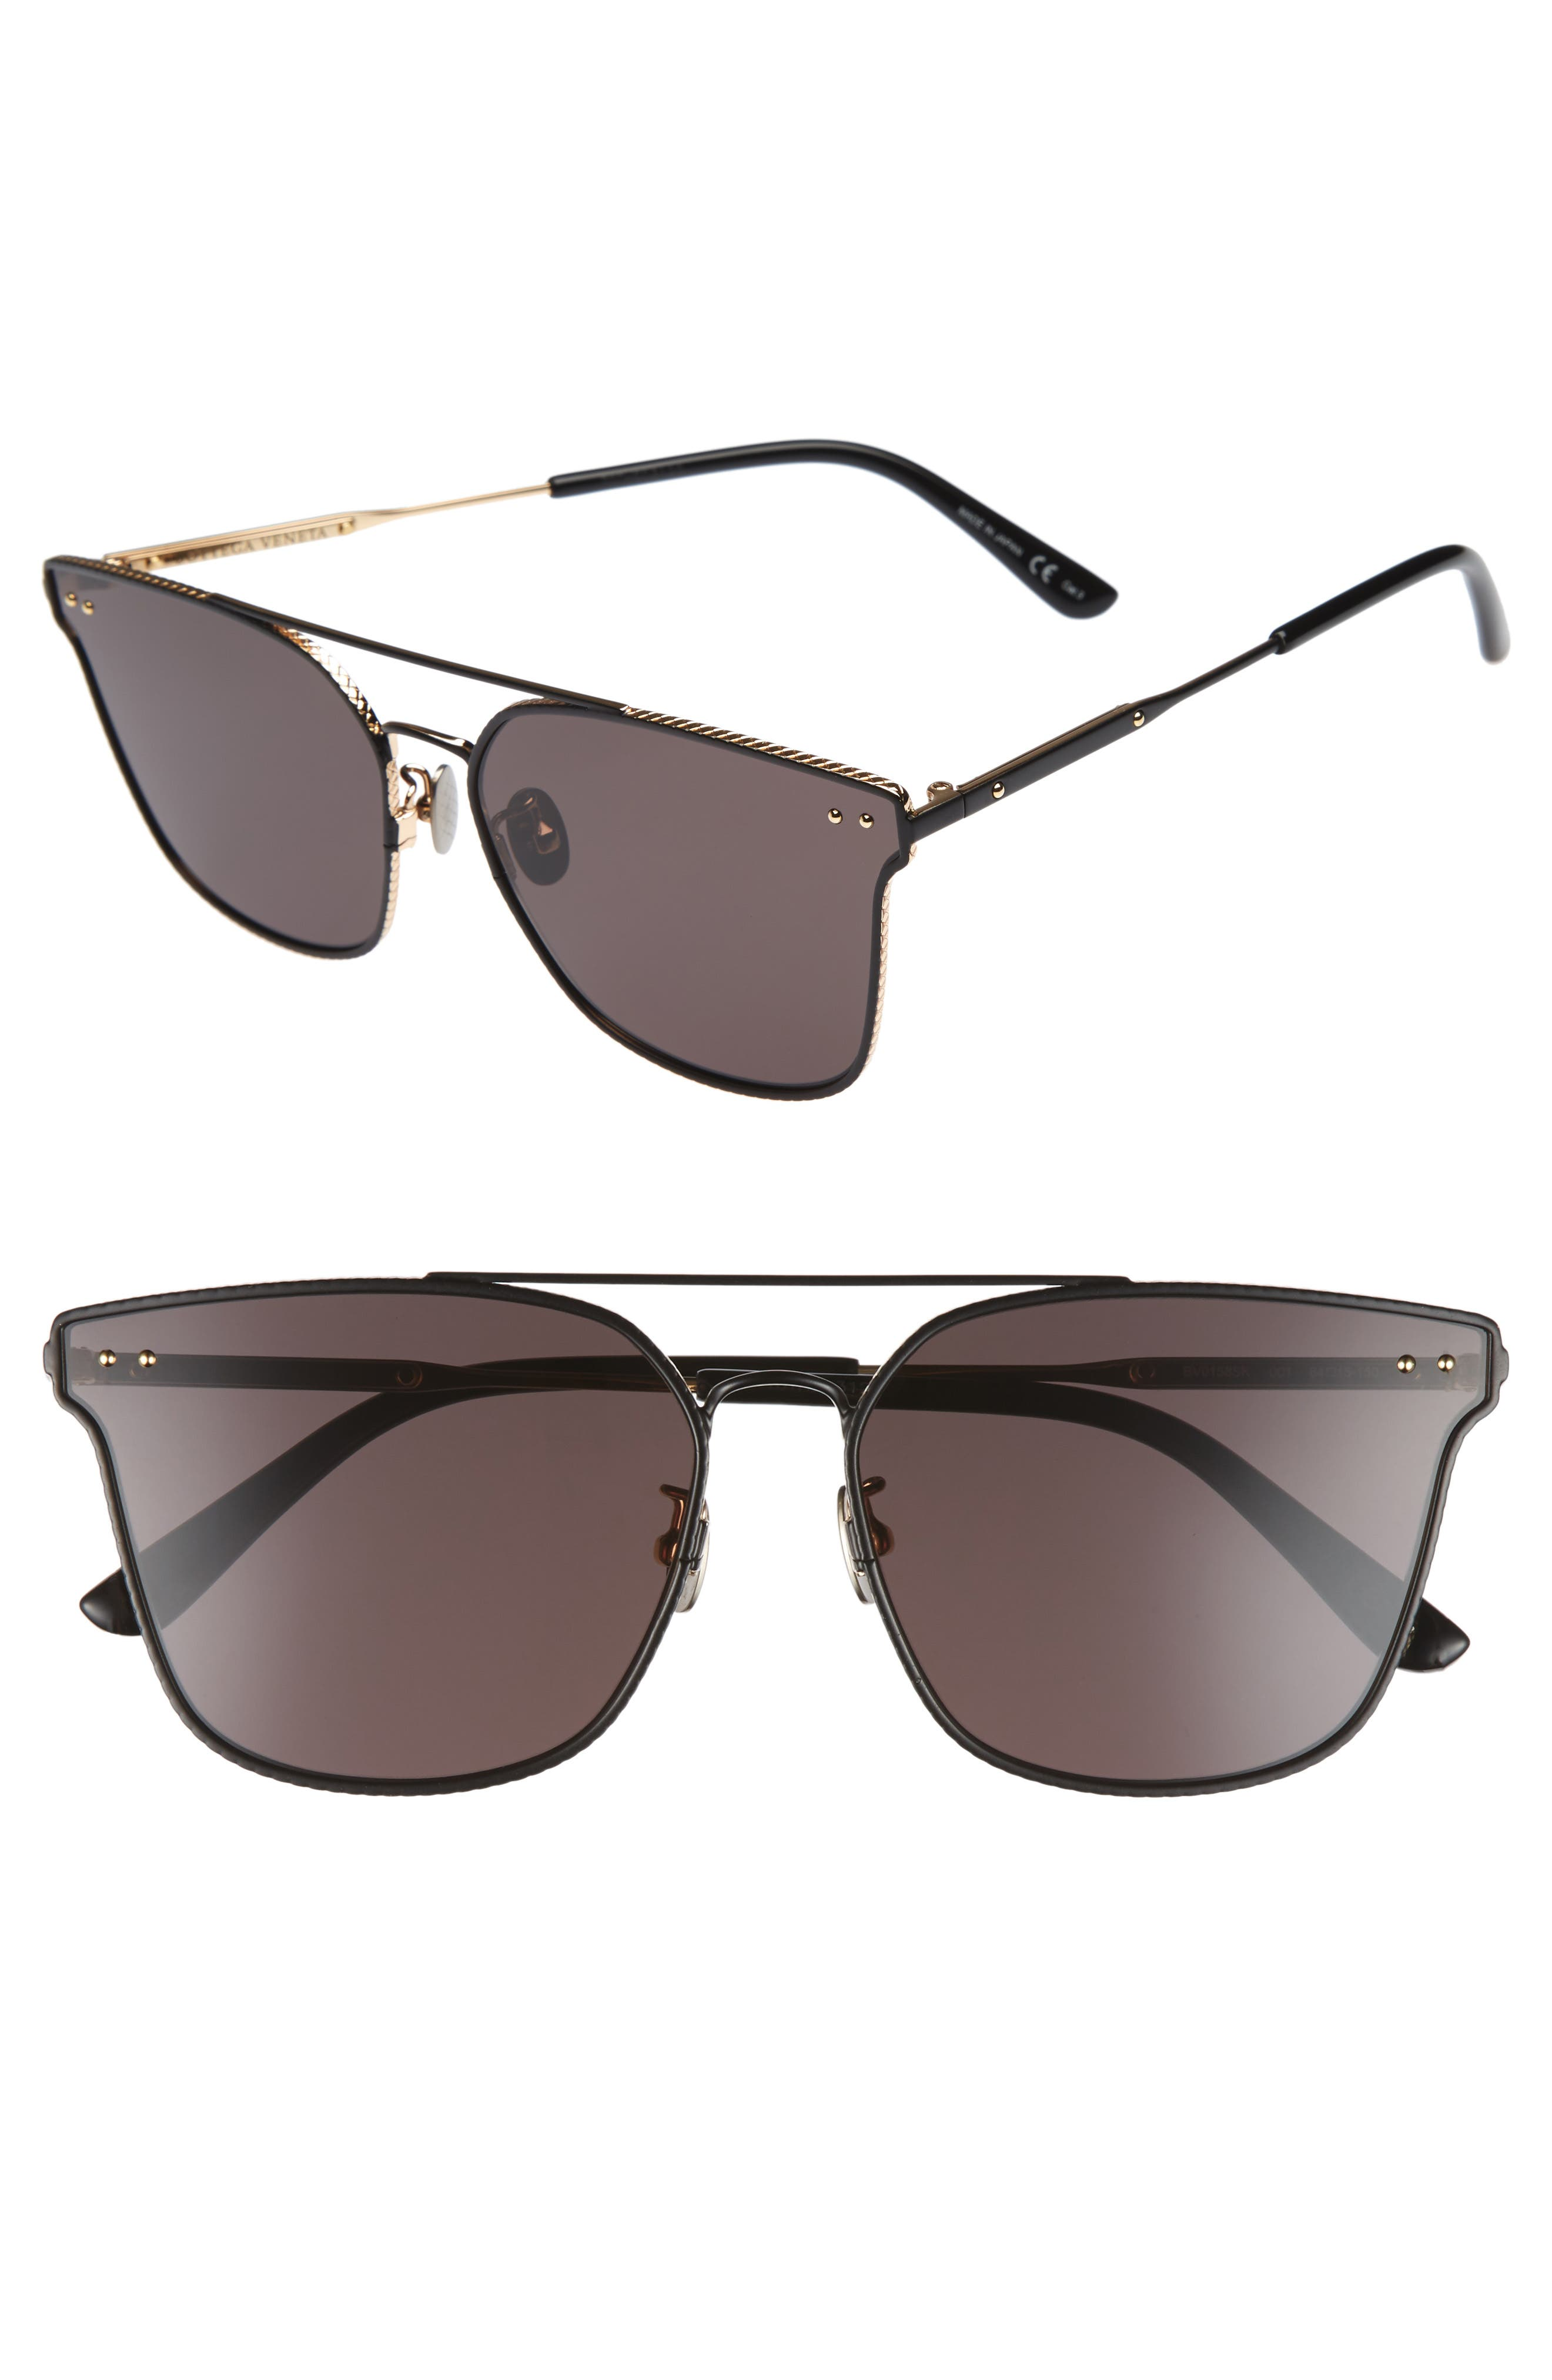 64mm Sunglasses,                         Main,                         color, BLACK